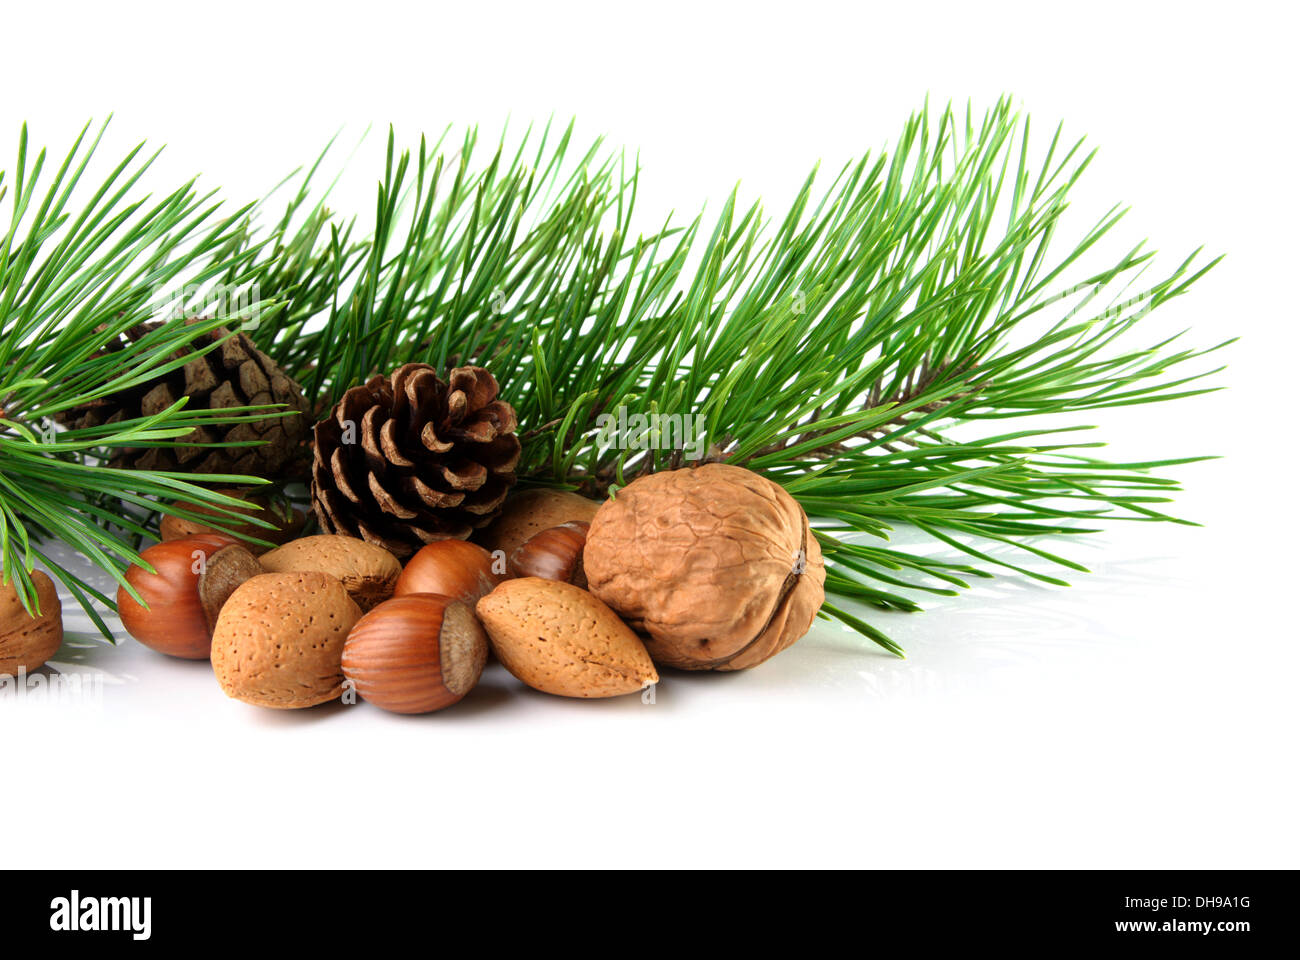 Christmas decoration with mixed nuts, pine twig and pine cones on a white background - Stock Image